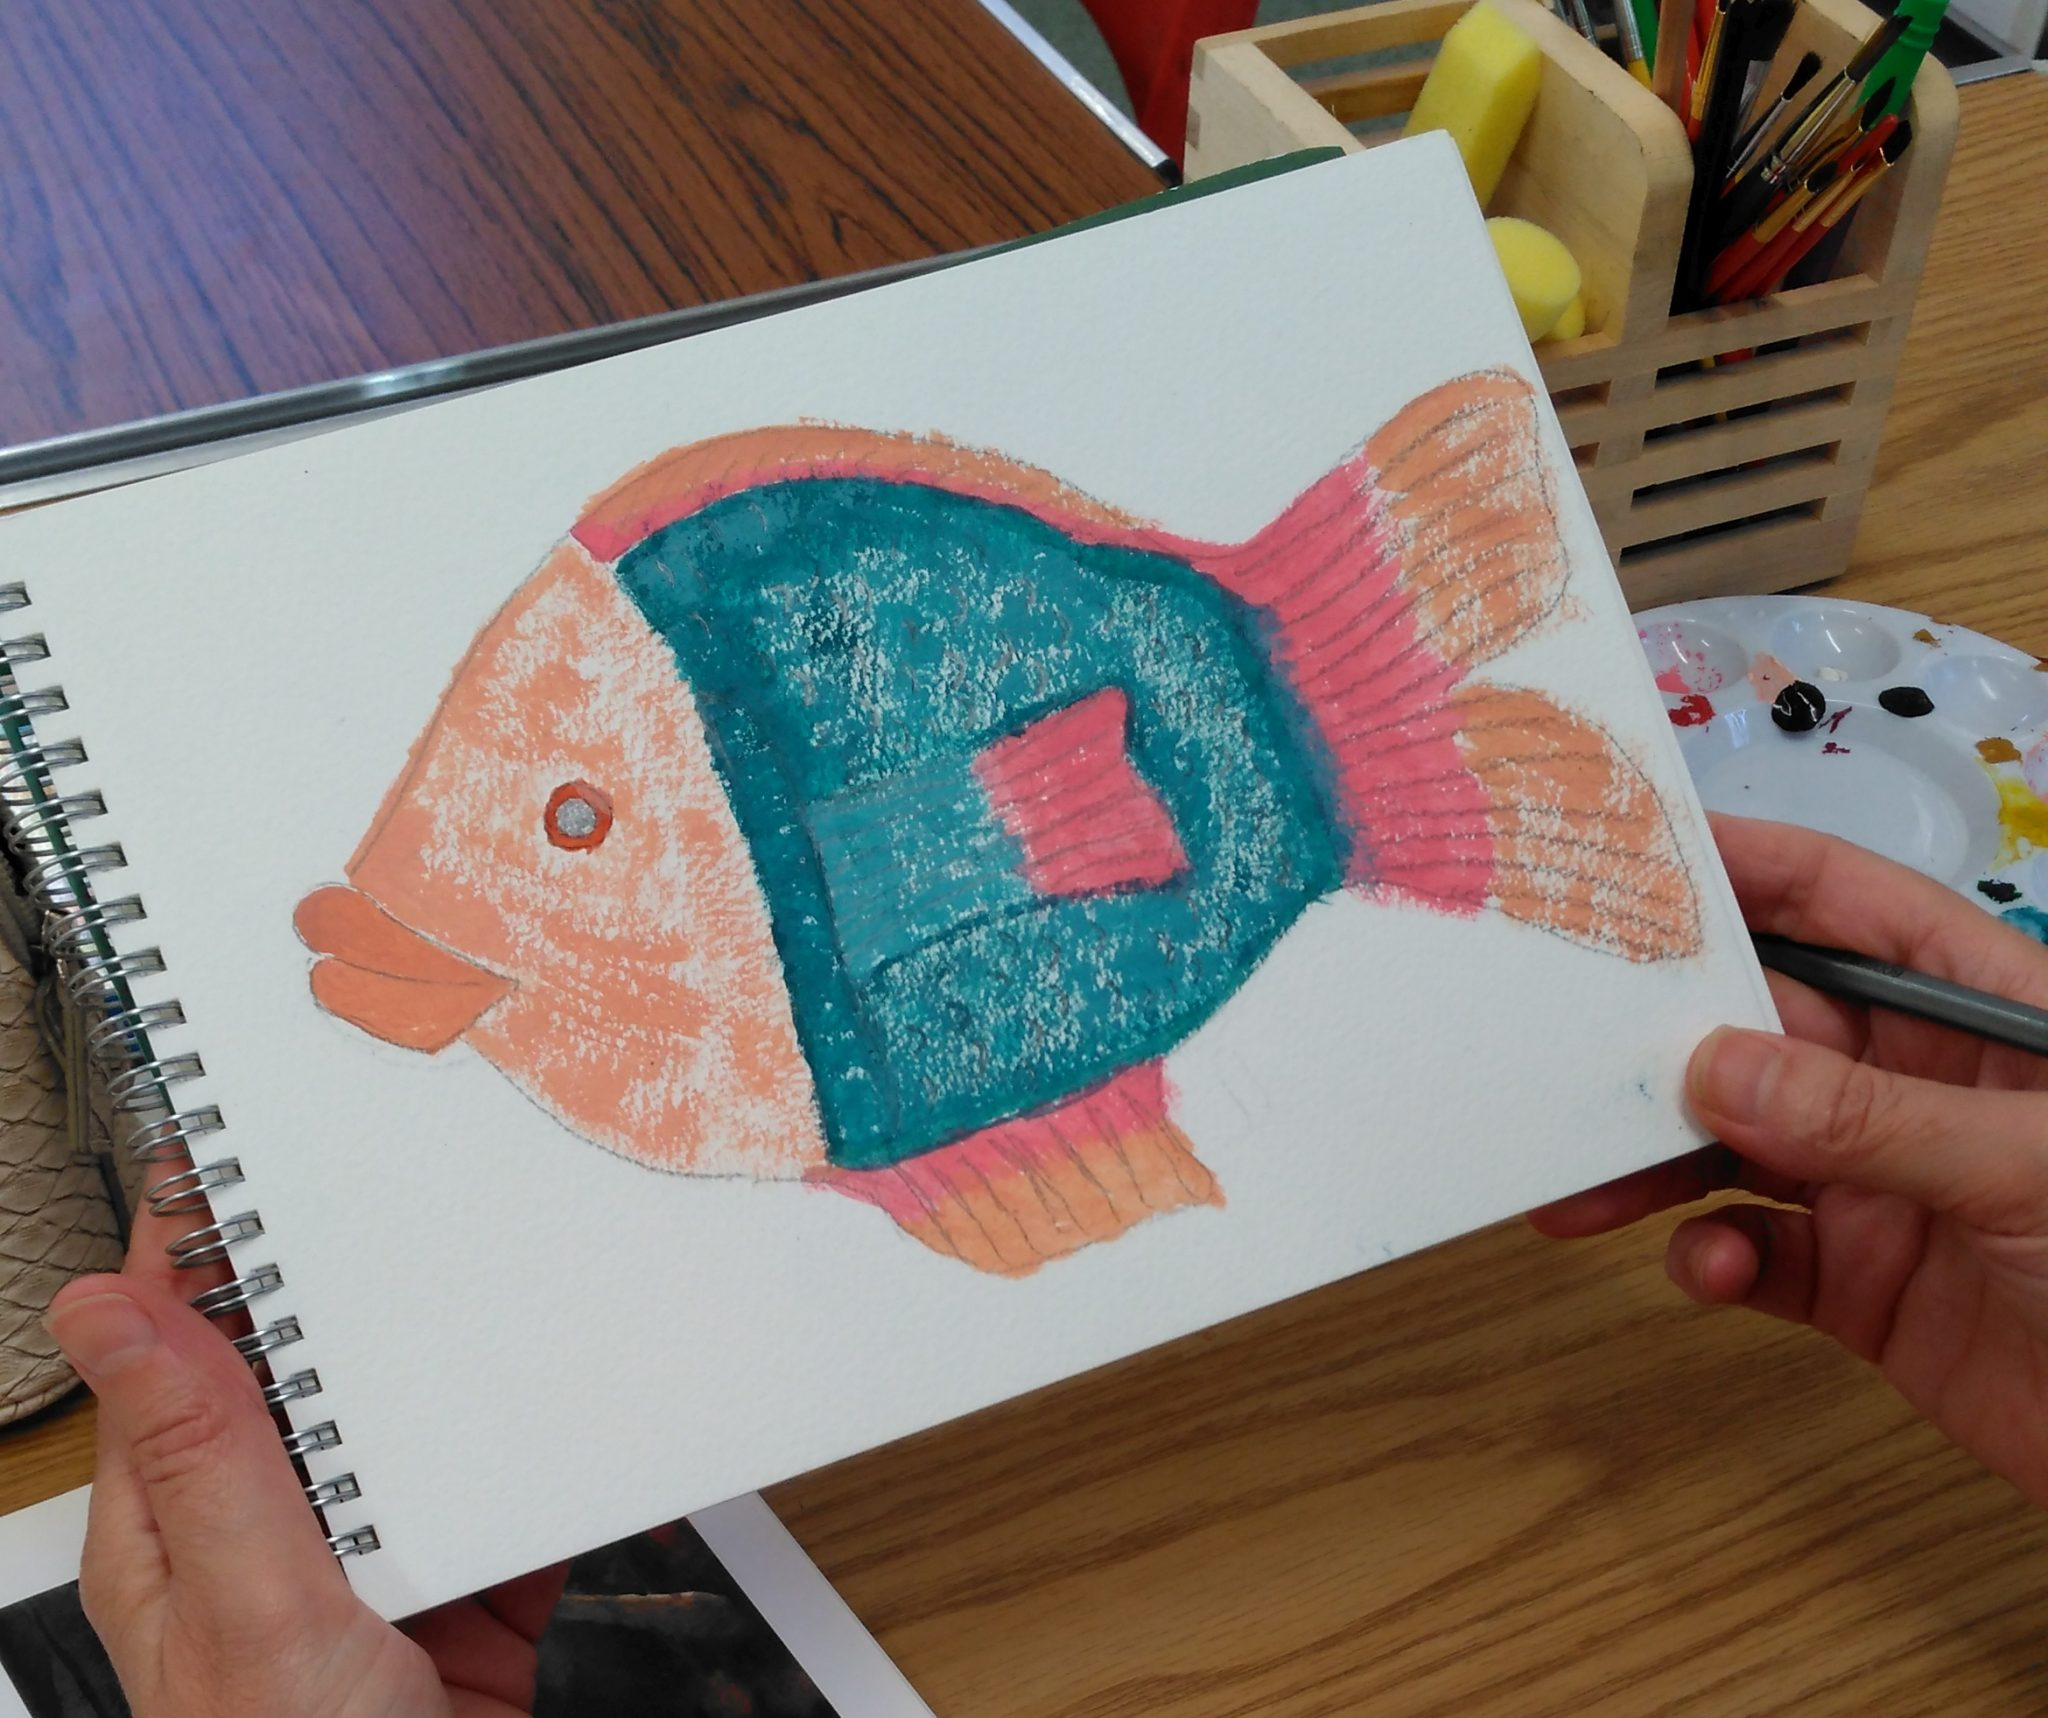 A sketchpad opened to a page with a painting of a fish.